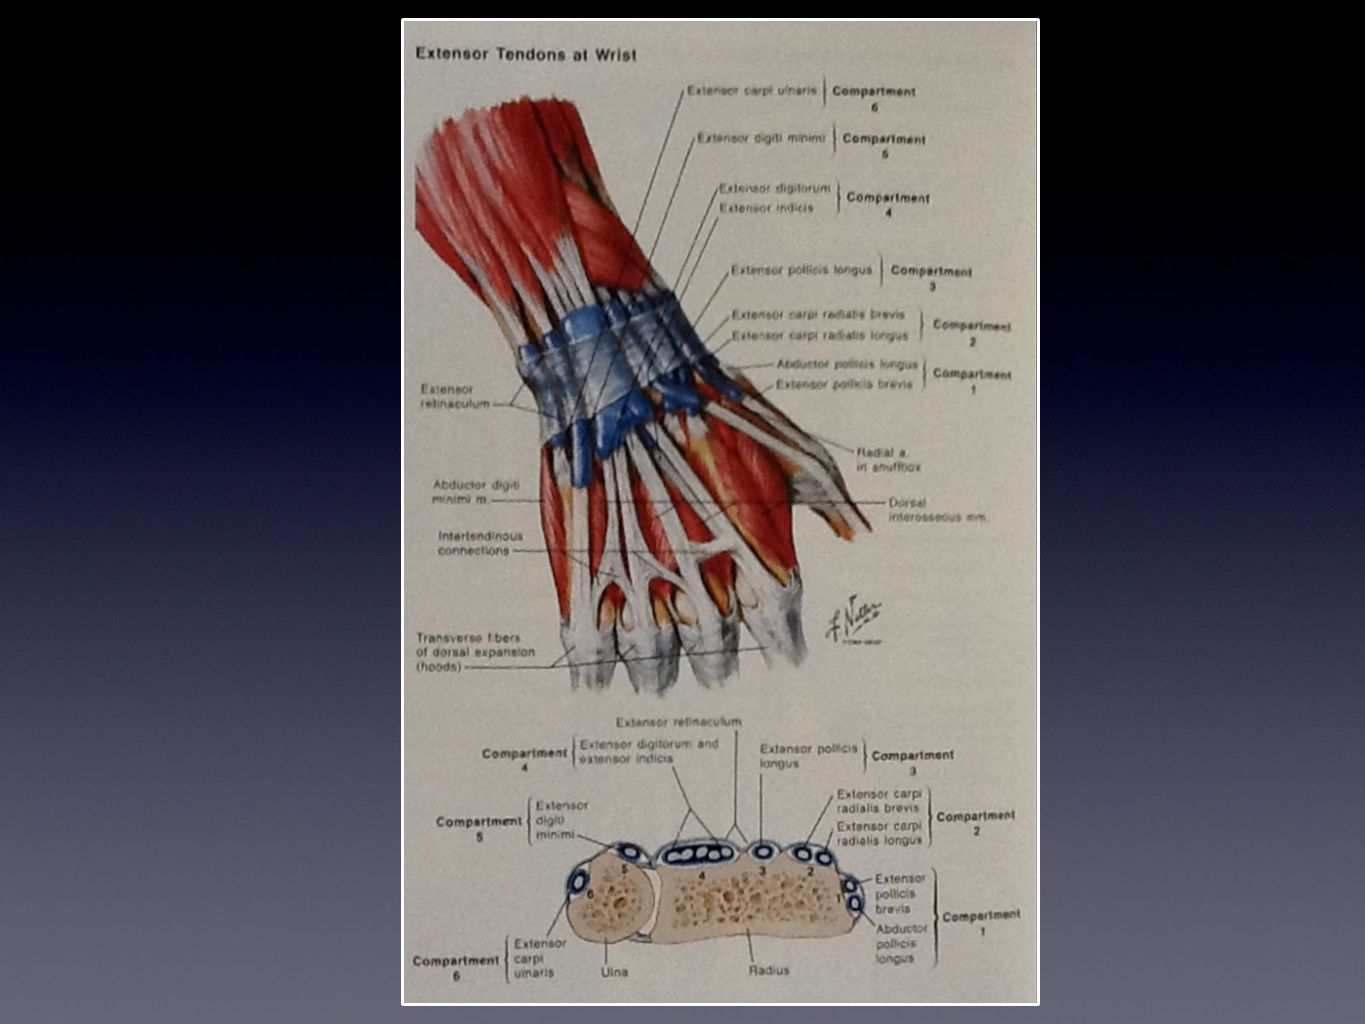 de Quervain Tenosynovitis Entrapment of APL & EPB in the 1st dorsal compartment of the wrist Cause: Repeated thumb abduction with simultaneous wrist ulnar deviation Symptoms: Radial wrist pain aggravated by thumb movement 6:1 women; Age group 40-60